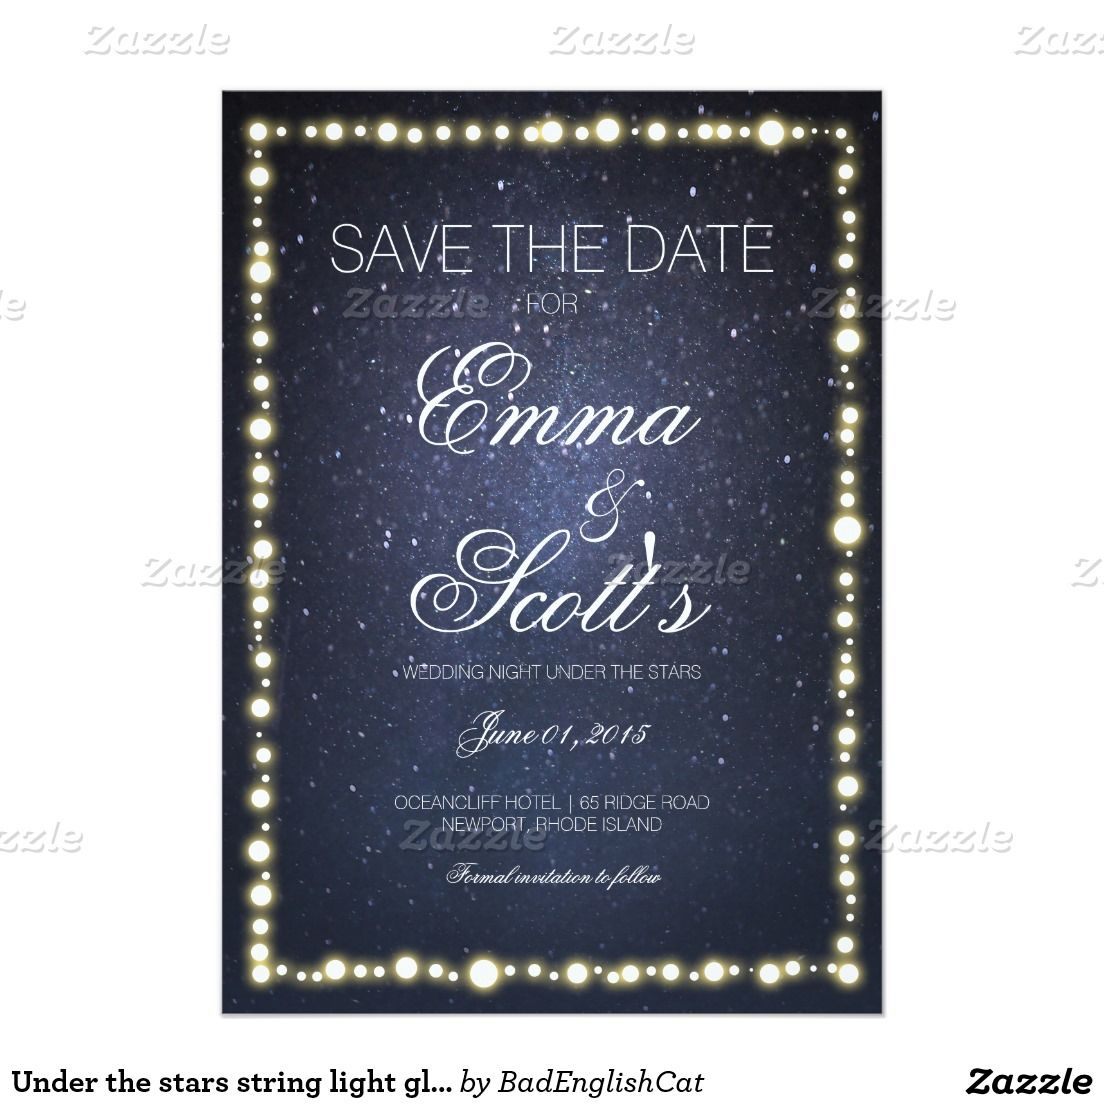 under the stars string light glow save the date in 2018